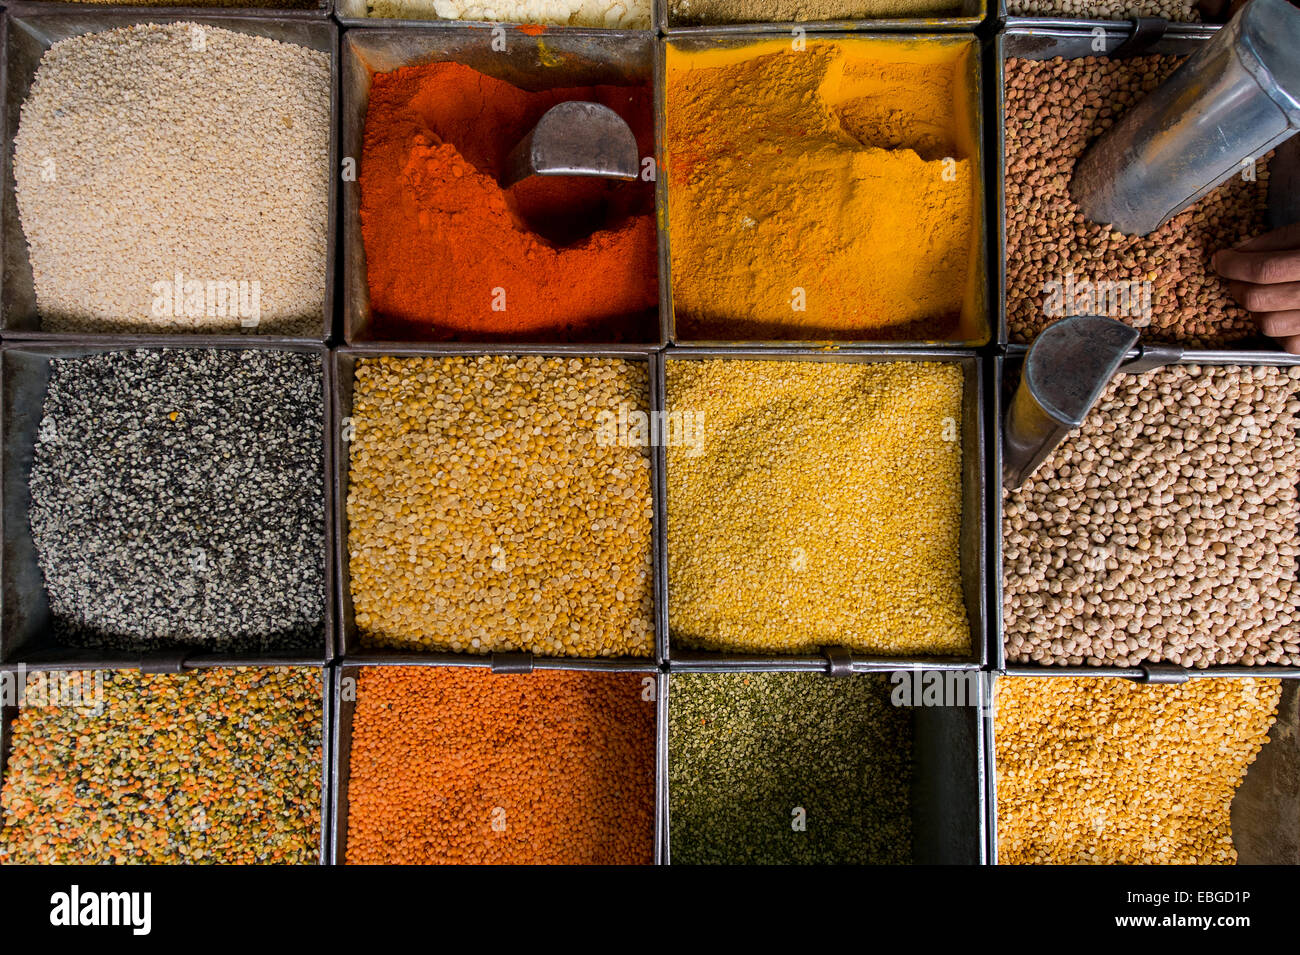 Various spices and lentils at a market, Jodhpur, Rajasthan, India - Stock Image